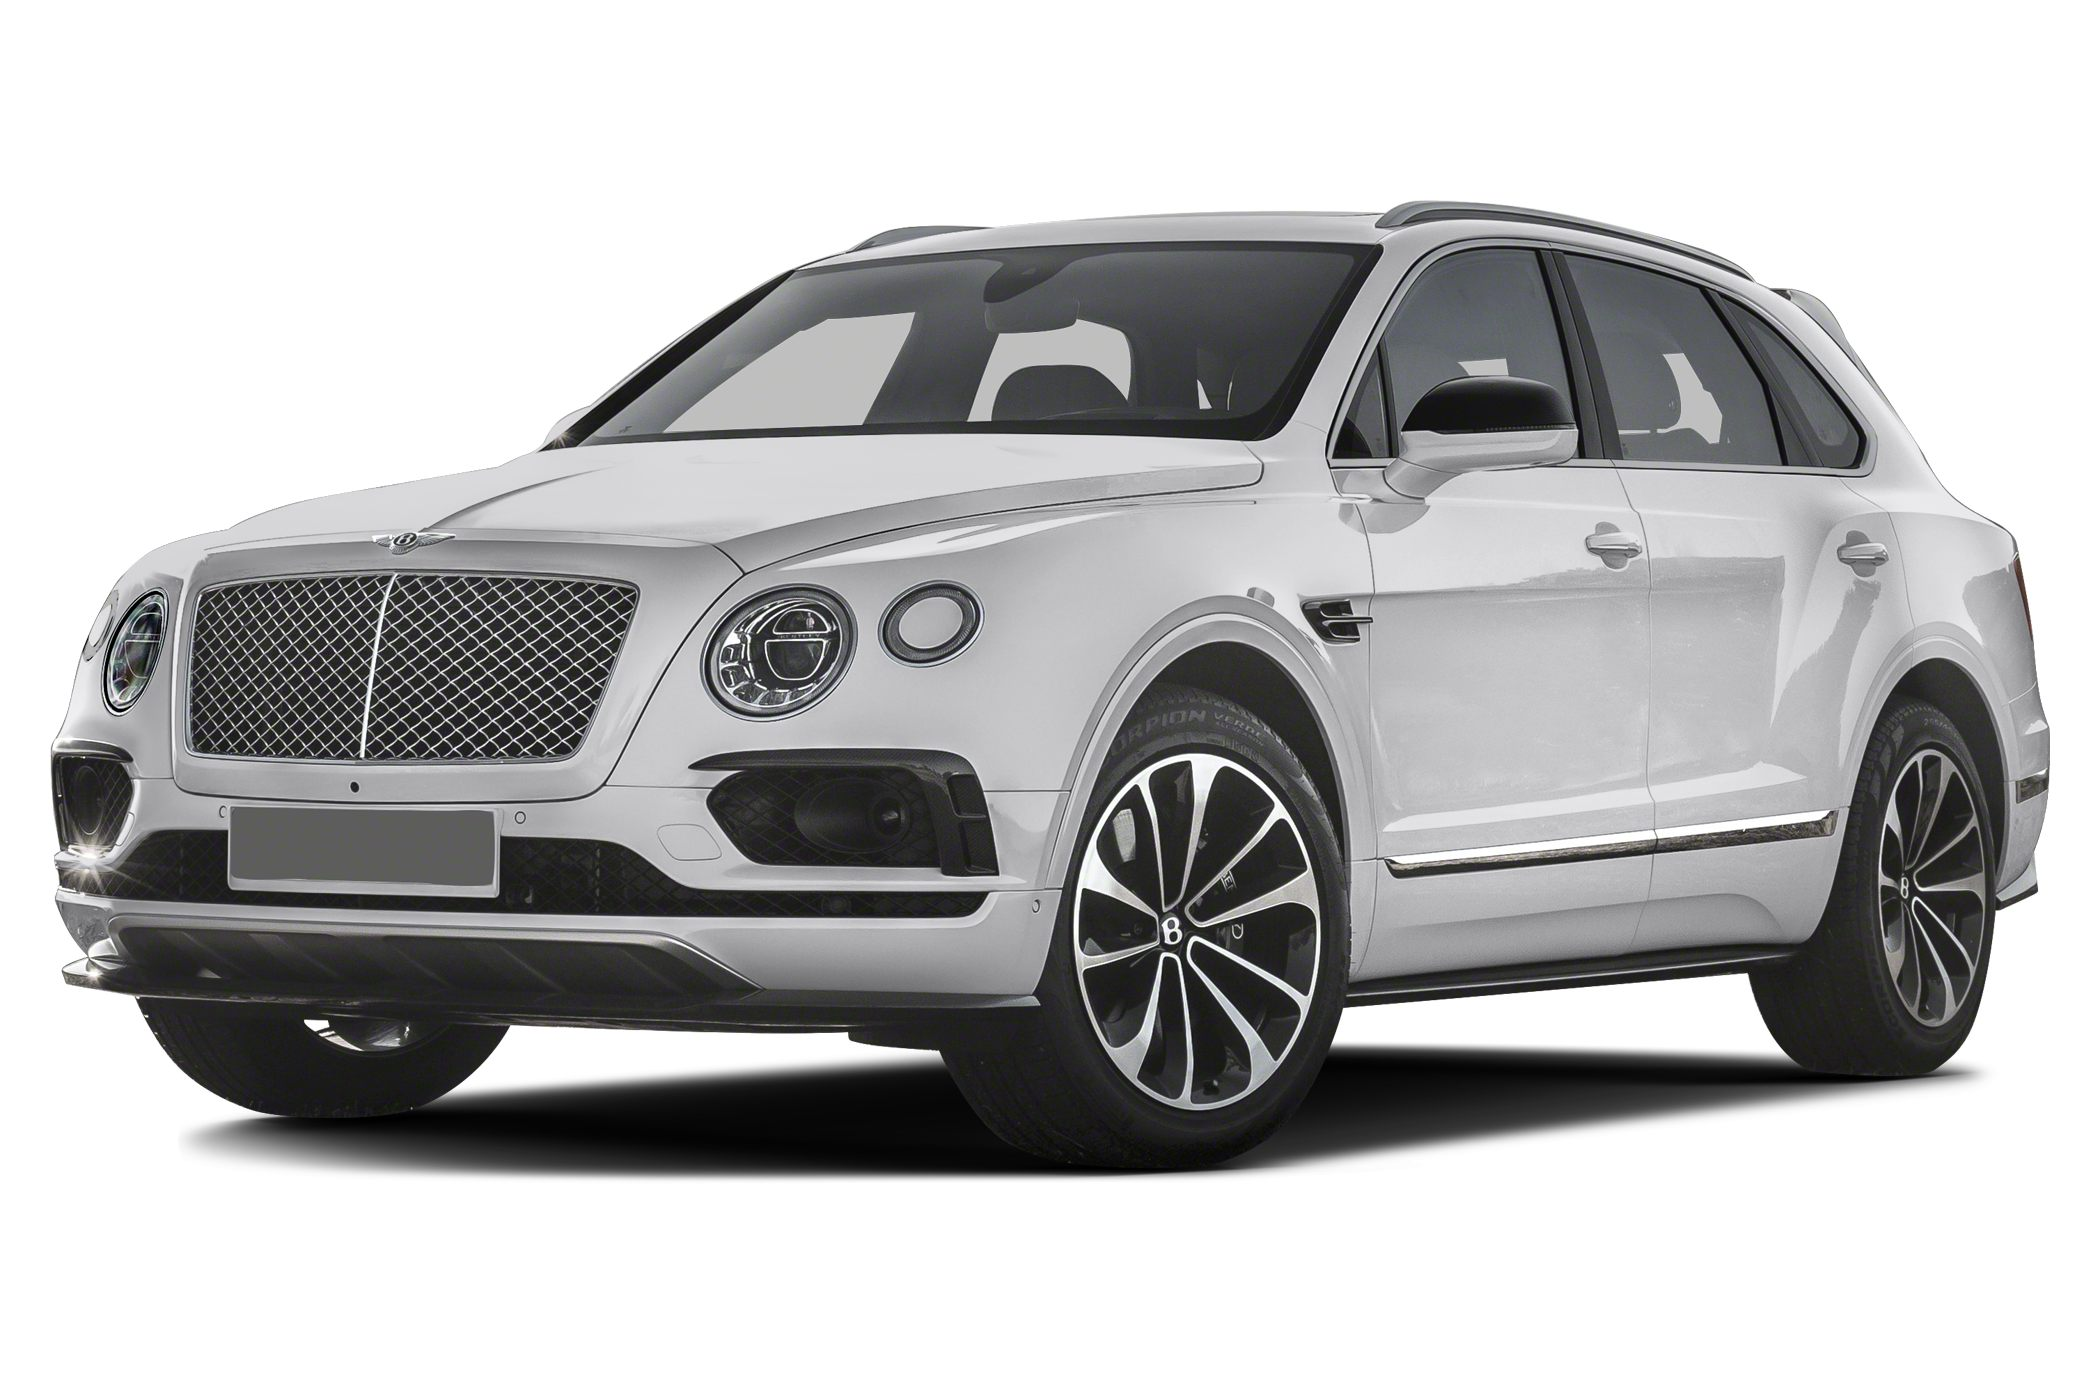 2018 Bentley Bentayga Specs And Prices